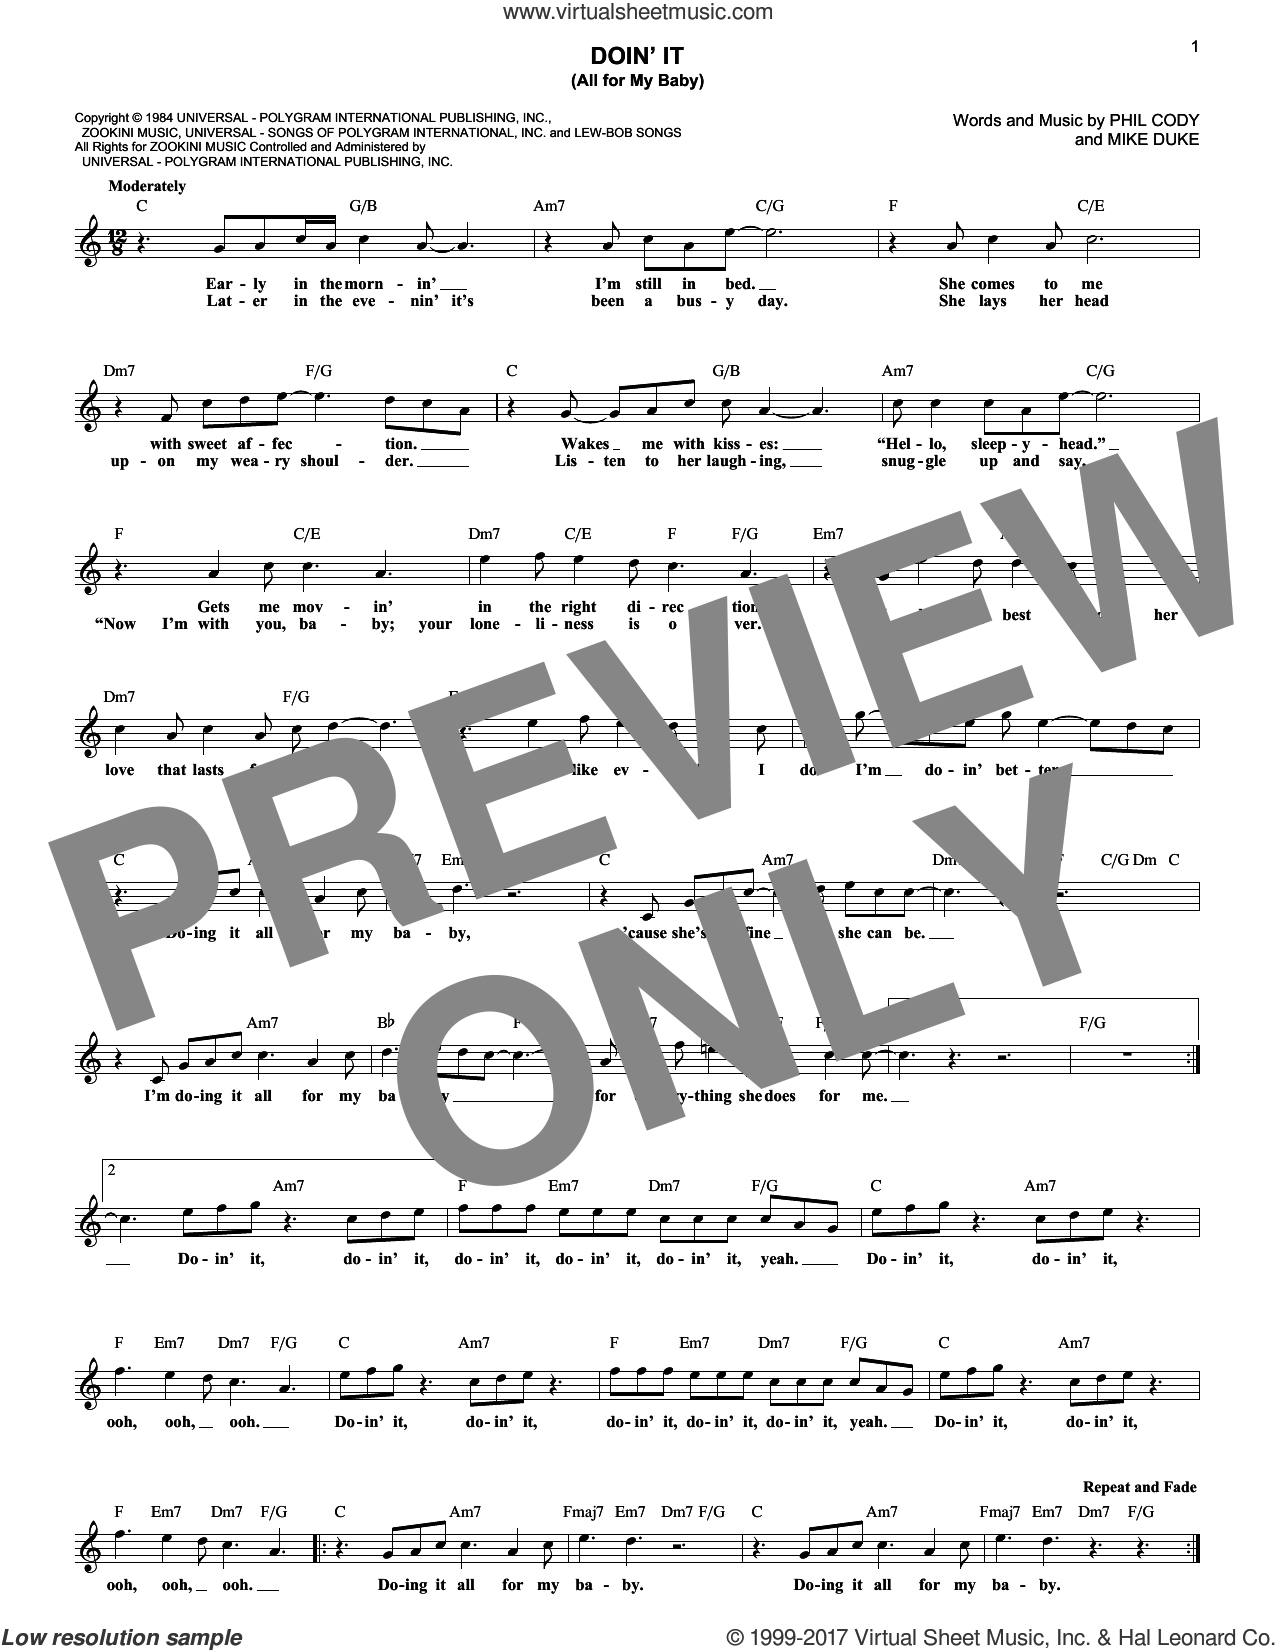 Doin' It (All For My Baby) sheet music for voice and other instruments (fake book) by Huey Lewis & The News, Mike Duke and Phil Cody, intermediate skill level